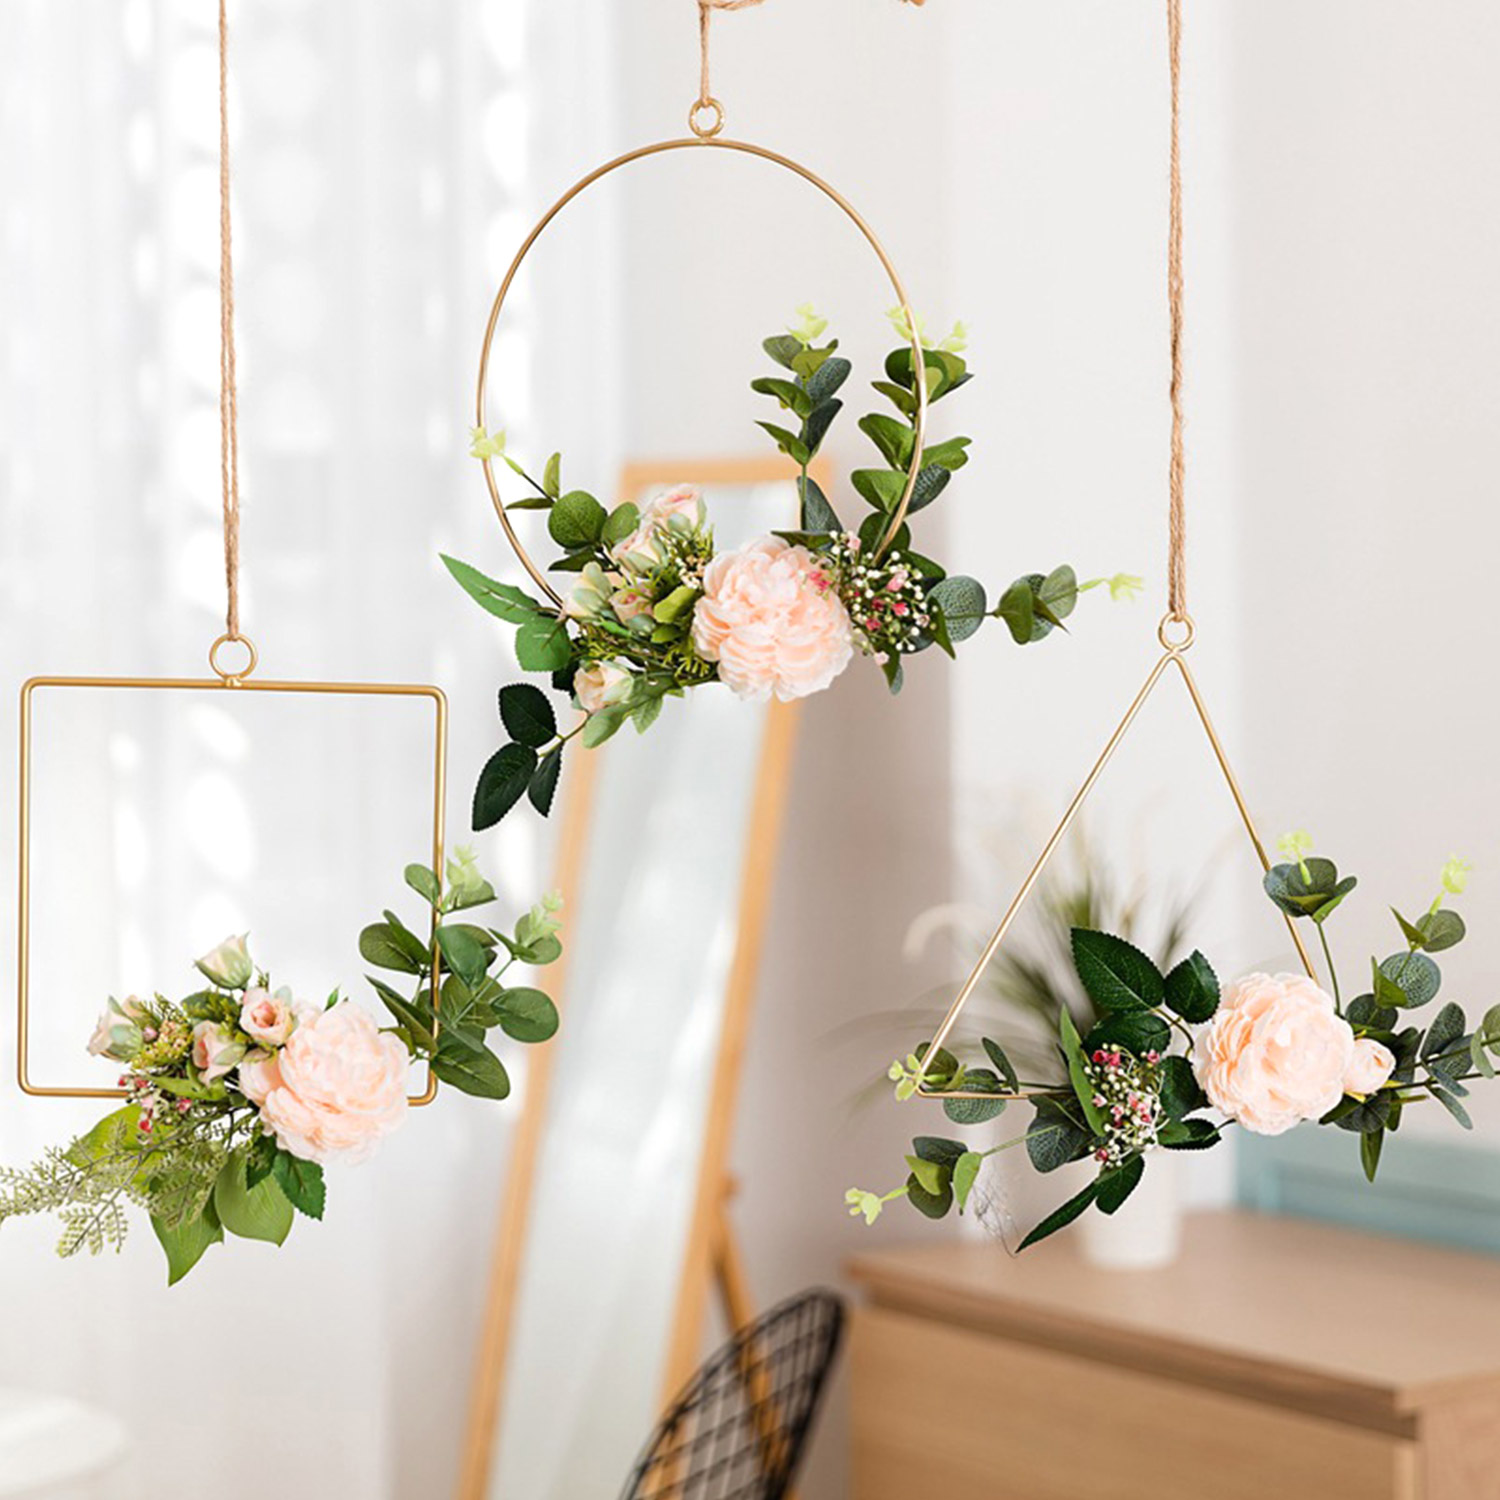 Geometric Metal Wire Round Triangle Square Hoop Frame For DIY Artificial Flower Arrangement Wreath Wall Hanging Backdrop Decors